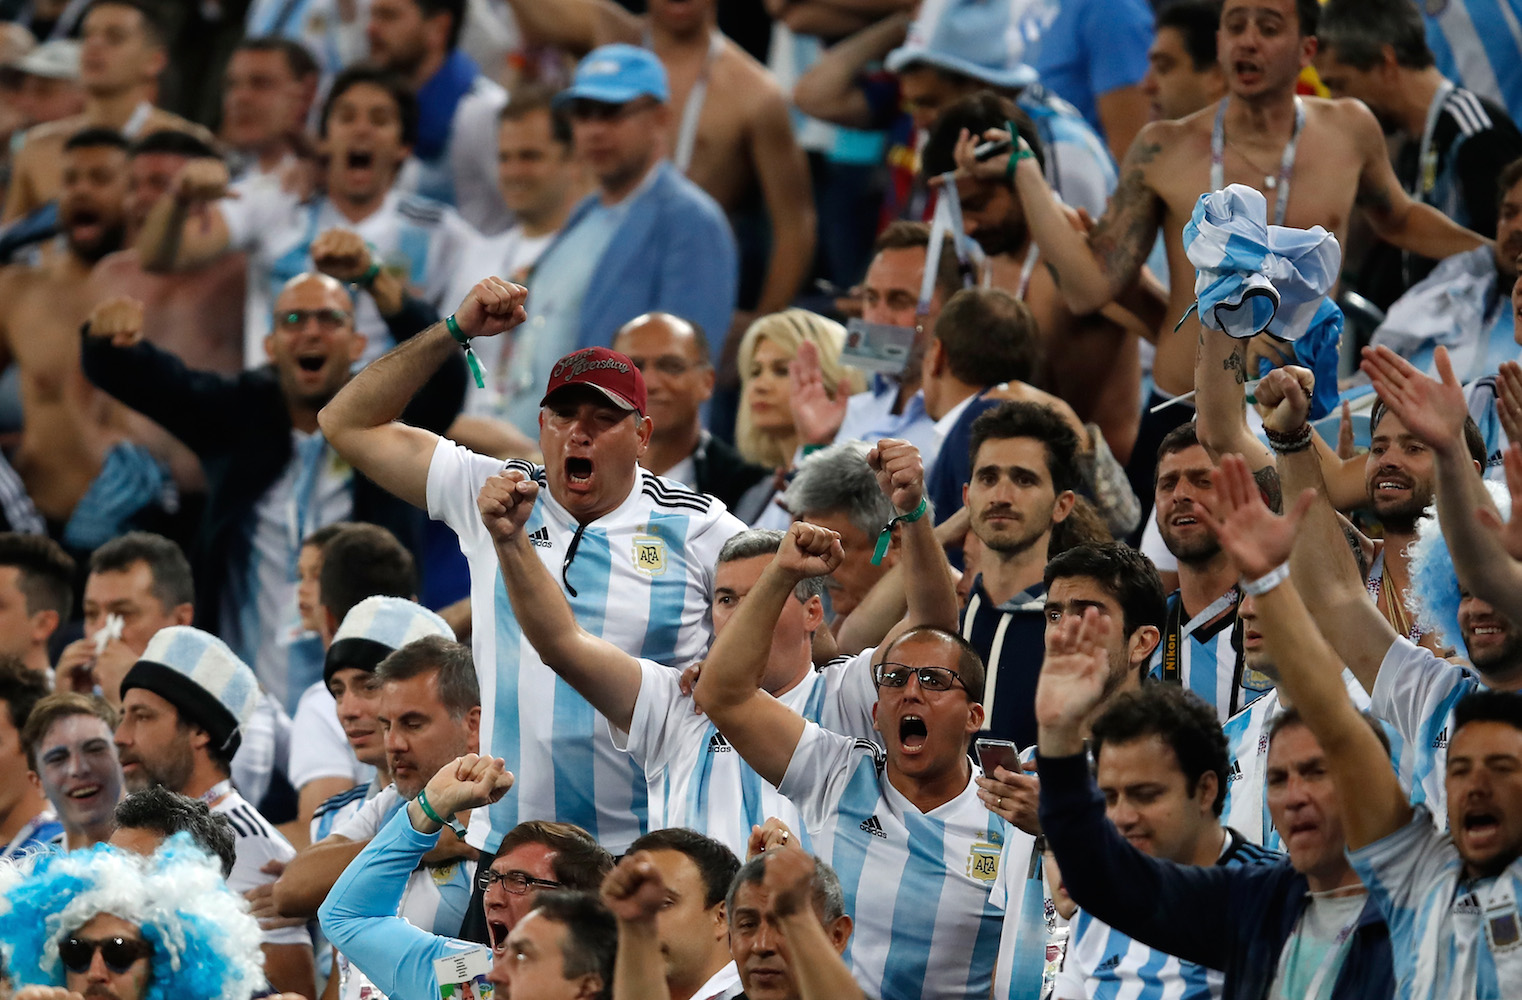 Upcoming Netflix Series 'Puerta 7' Is a Thriller About Soccer & Corruption in Argentina